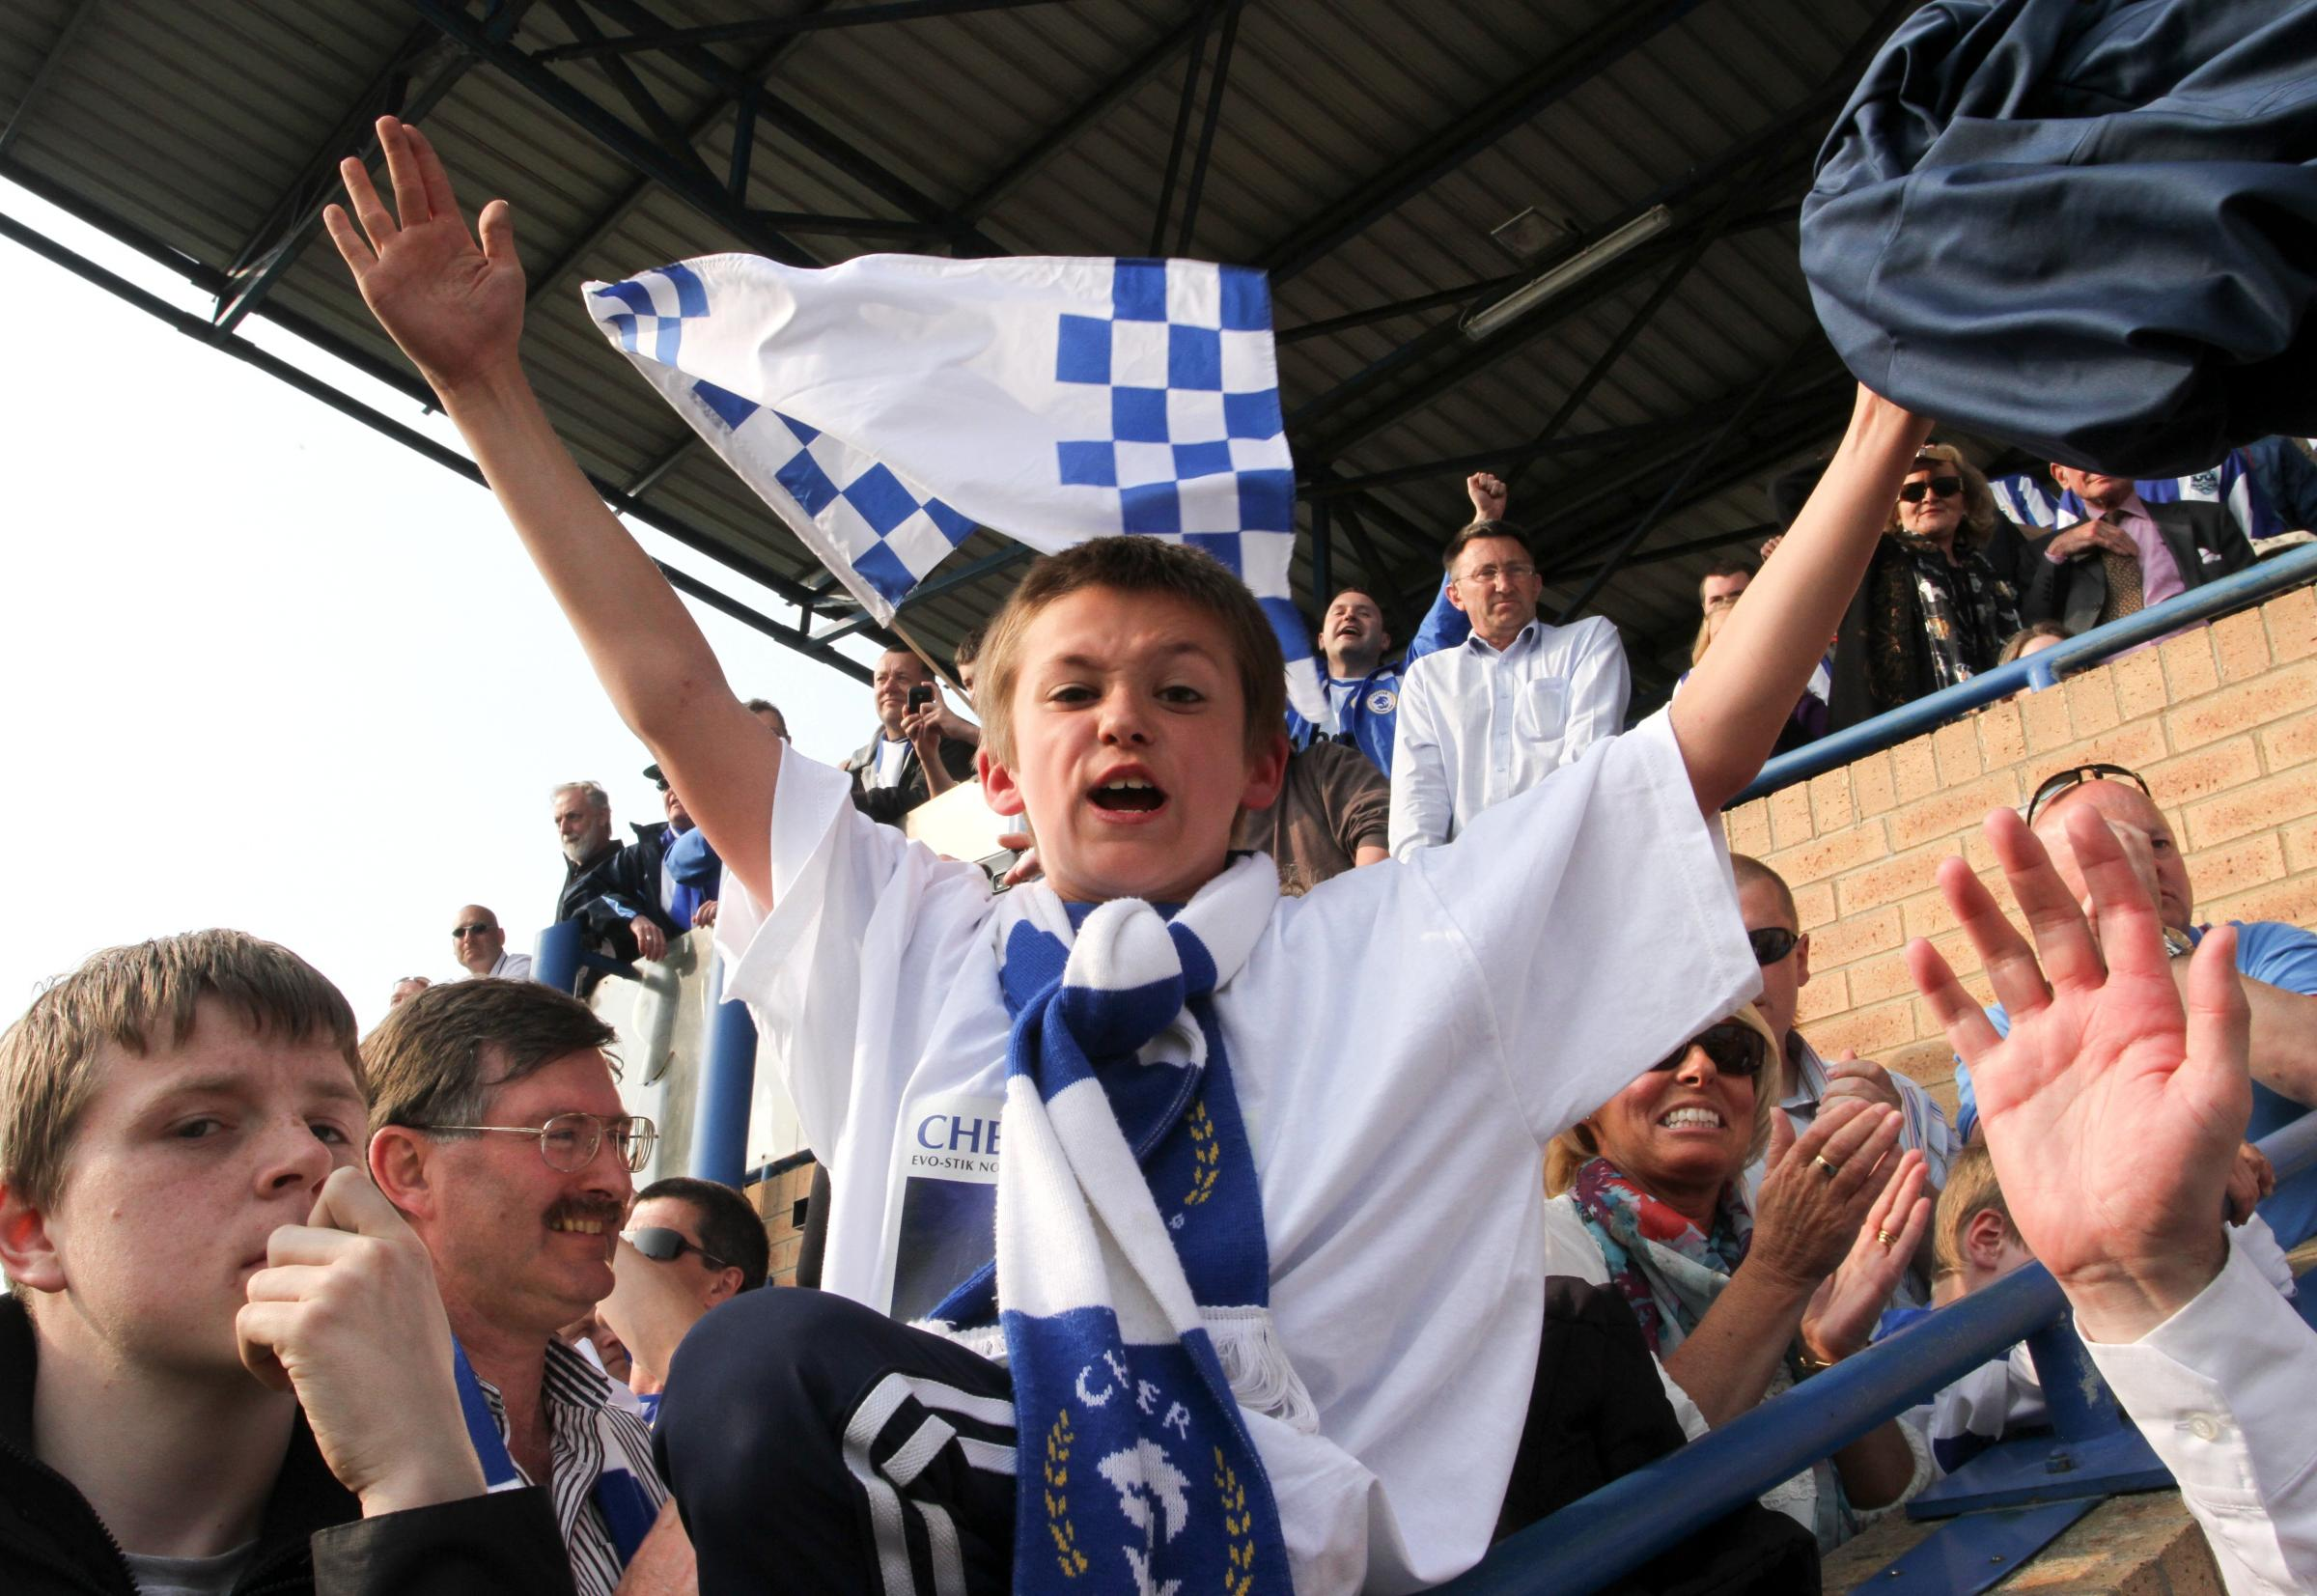 Jubilant scenes of Chester FC in 2011, having clinched the Evo-Stik Division One North title - just - on the final day of the season. Pictures: RICK MATTHEWS.